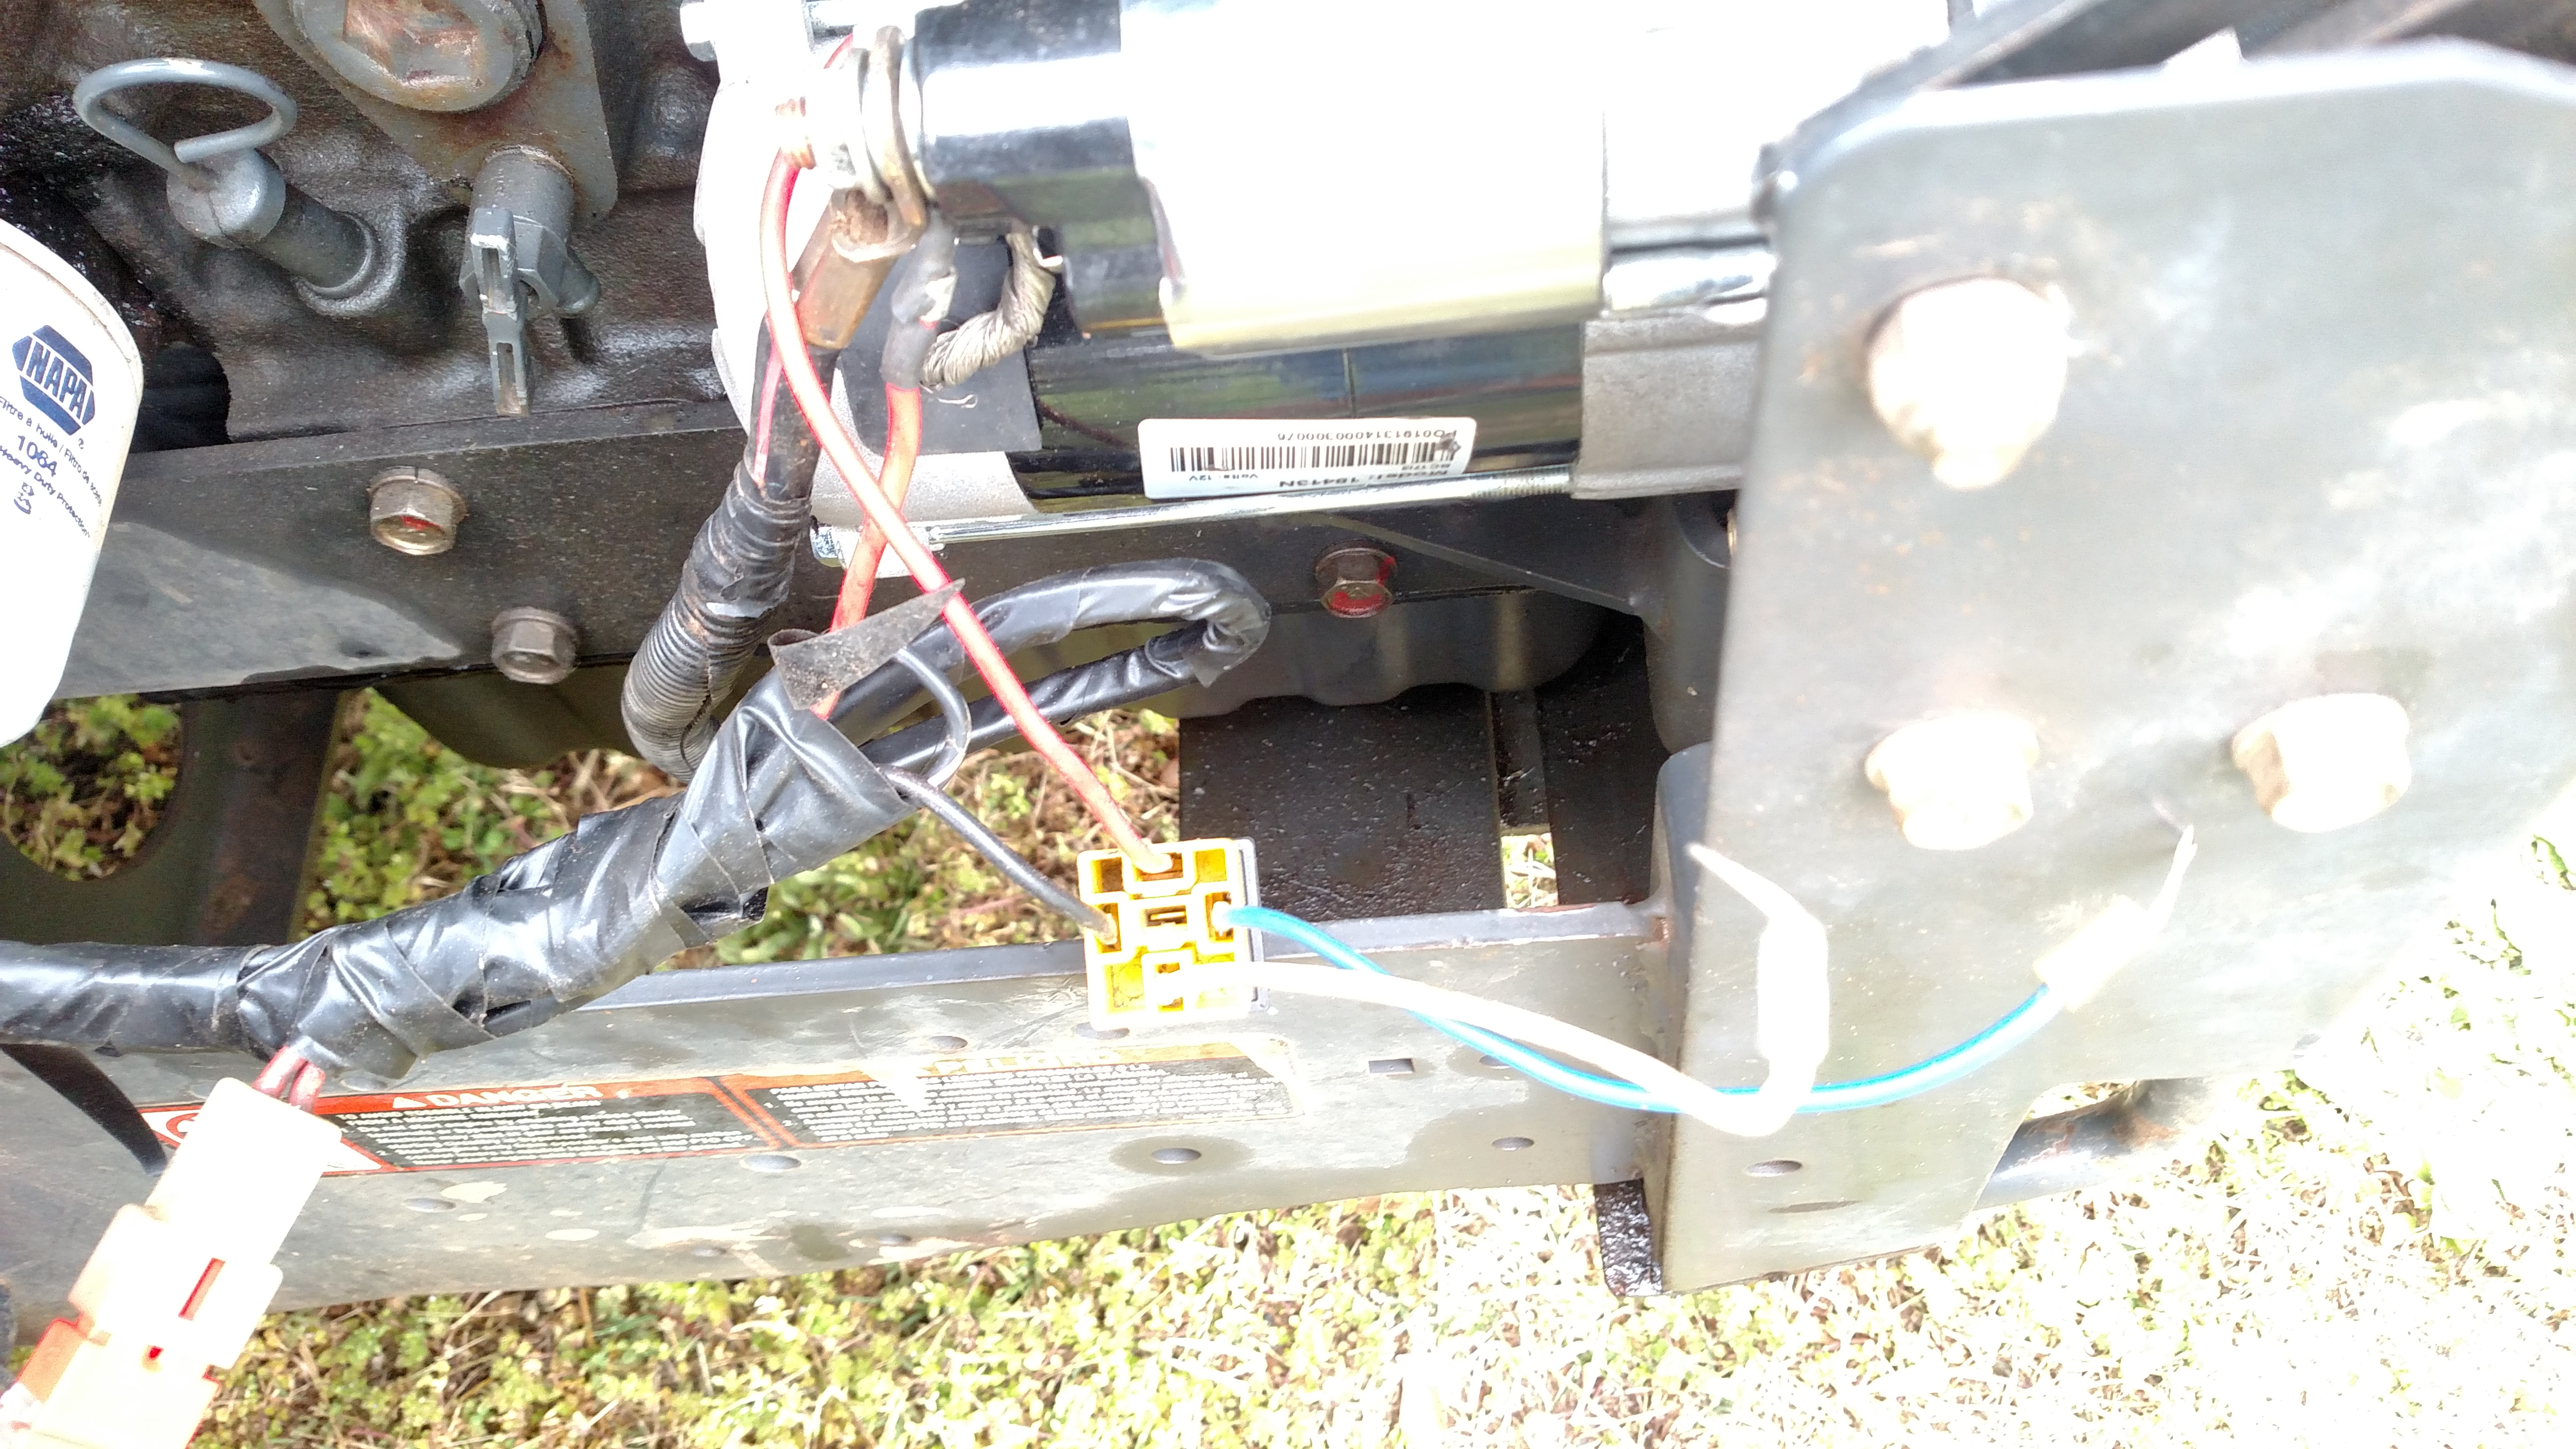 Have a KUBOTA zd331 that someone has replaced the starter on ... Kubota Zd Wiring Diagram on kubota l3800, kubota 72 inch mower, kubota 60 inch mower belt, kubota snow plow, kubota mower parts lookup, kubota l3940, kubota landscape rake, kubota zg striping kit for, kubota zero turn prices, kubota zero turn mowers, kubota front loader, kubota rtv900, kubota zd221 service manual,